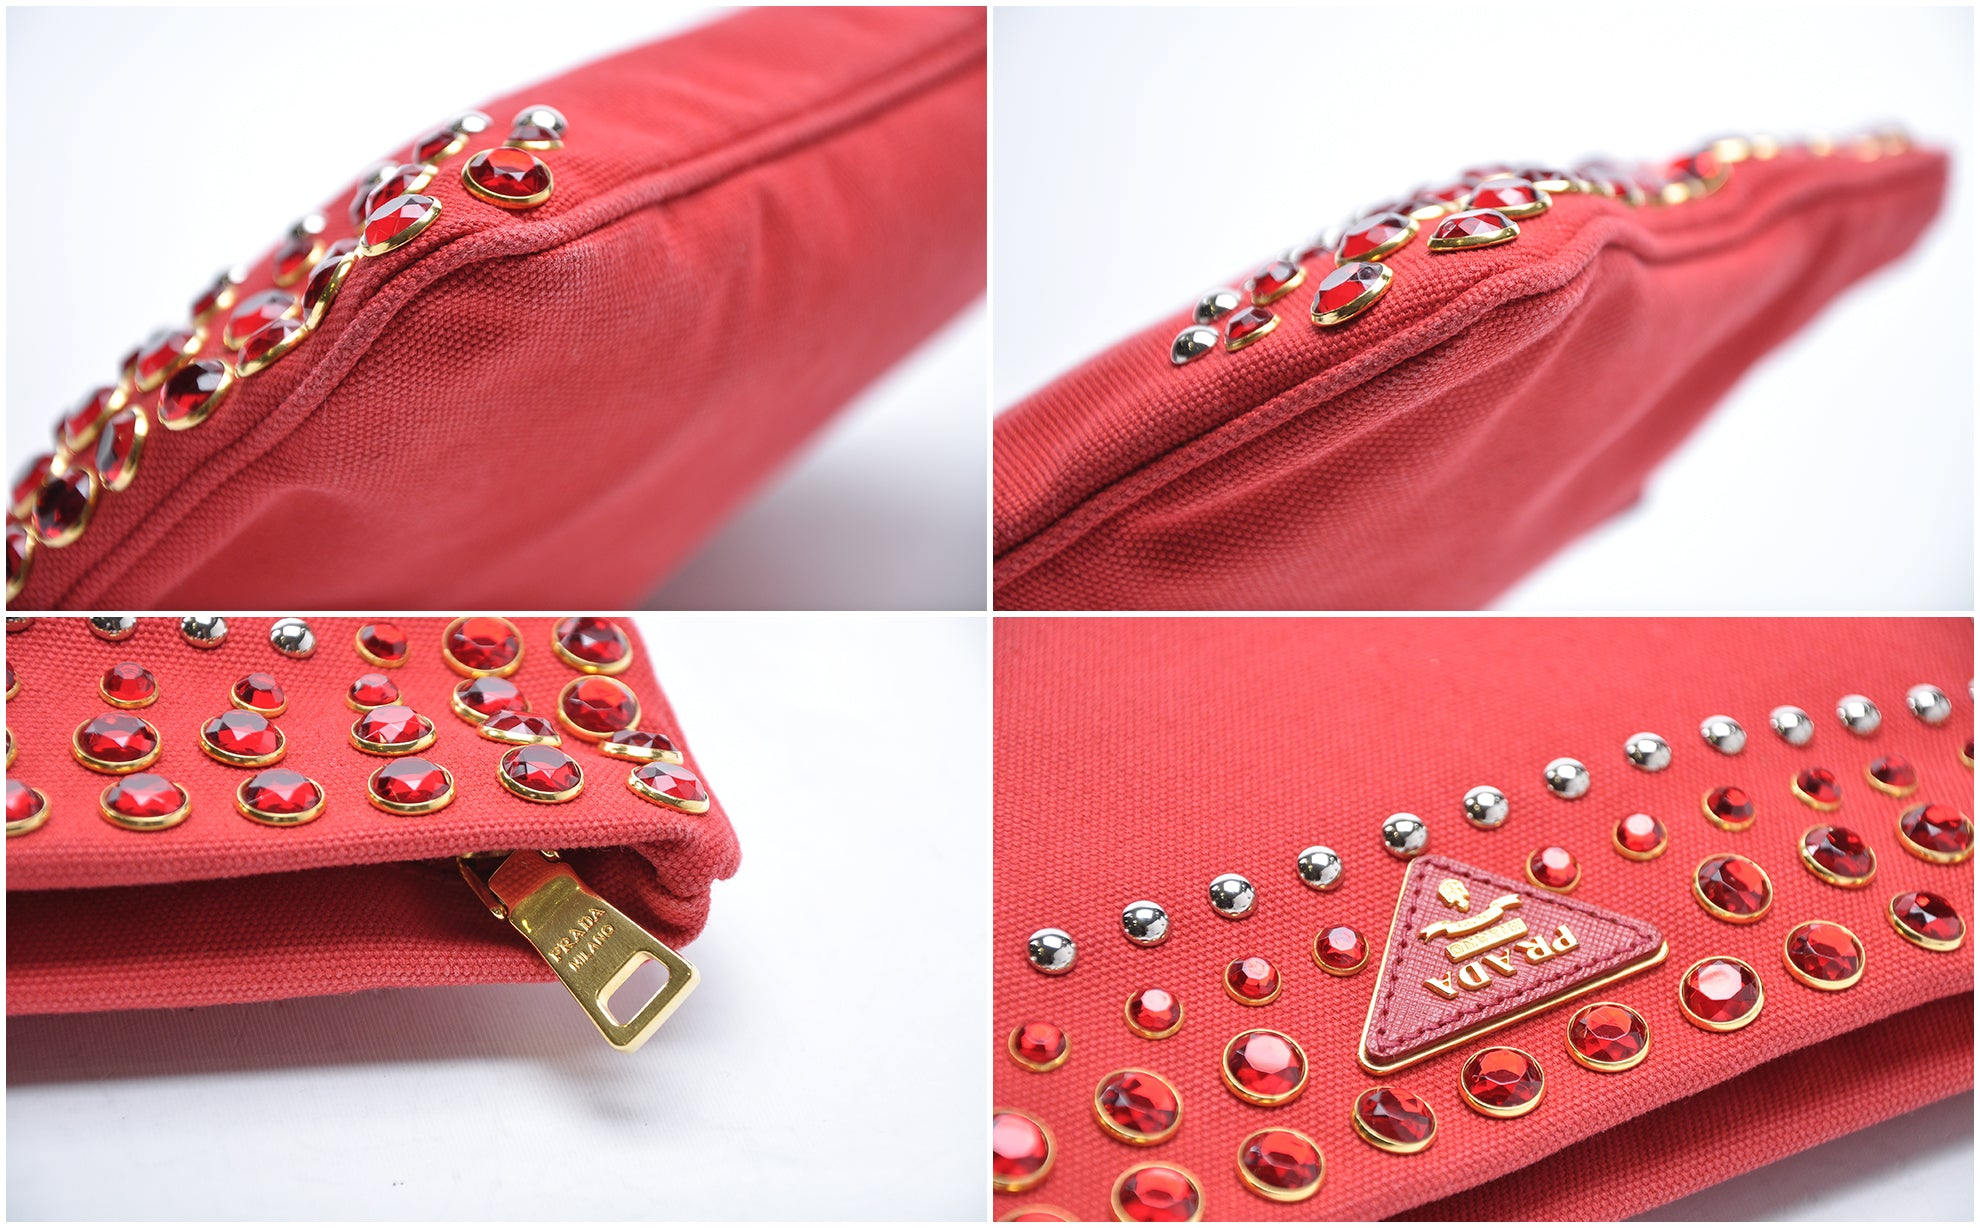 Prada BP5210 Red Canvas Clutch with Embellishments